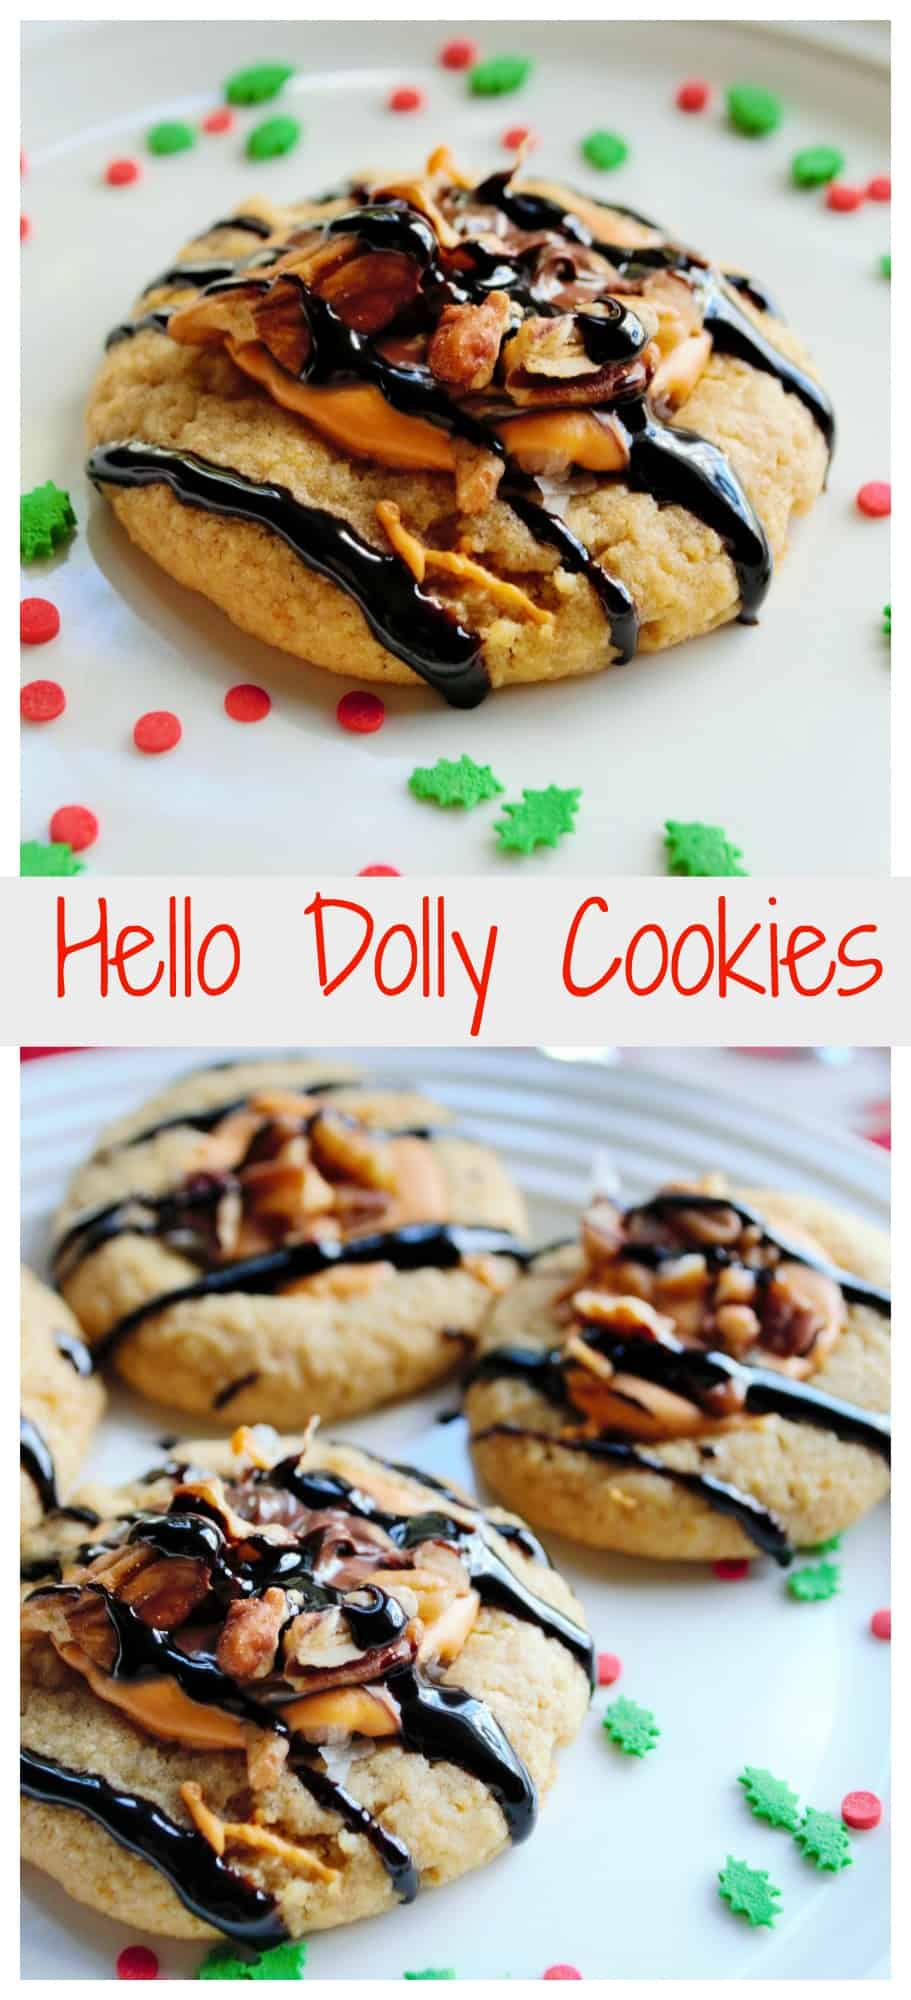 Hello Dolly Cookies | Hello Dolly Cookies are a new twist on a favorite holiday classic treat.  All the deliciousness of a Hello Dolly Cookie bar now in the form of a cookie! | Pack Momma | https://www.packmomma.com #hellodolly #hellodollycookies #magicbars #christmascookies #christmasfood